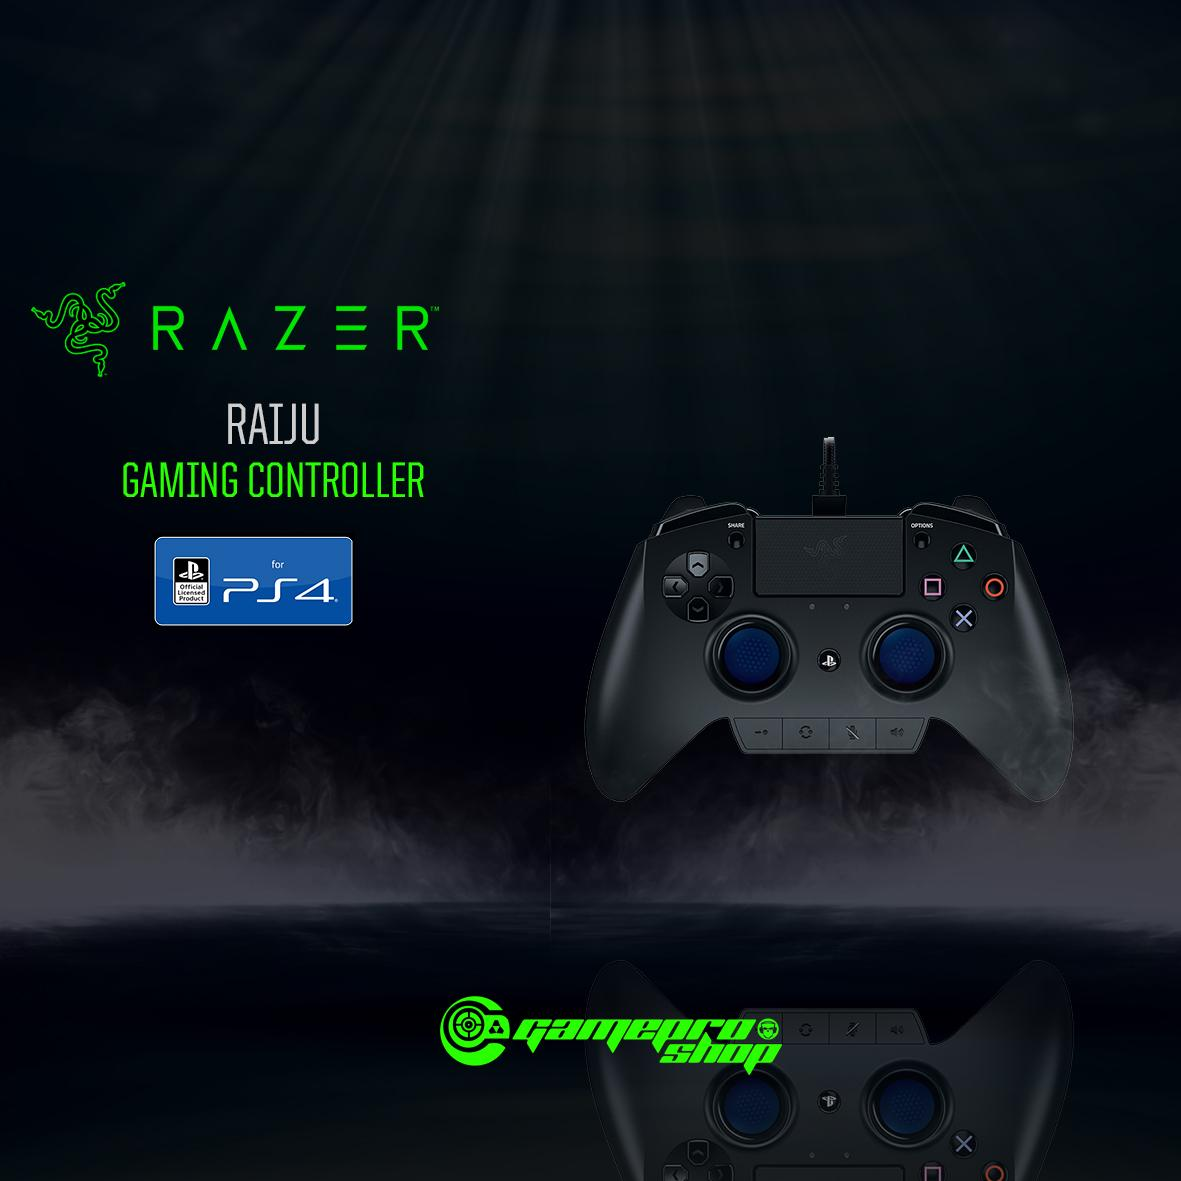 RAZER RAIJU GAMING CONTROLLER FOR PS4 *HAJI PROMO*